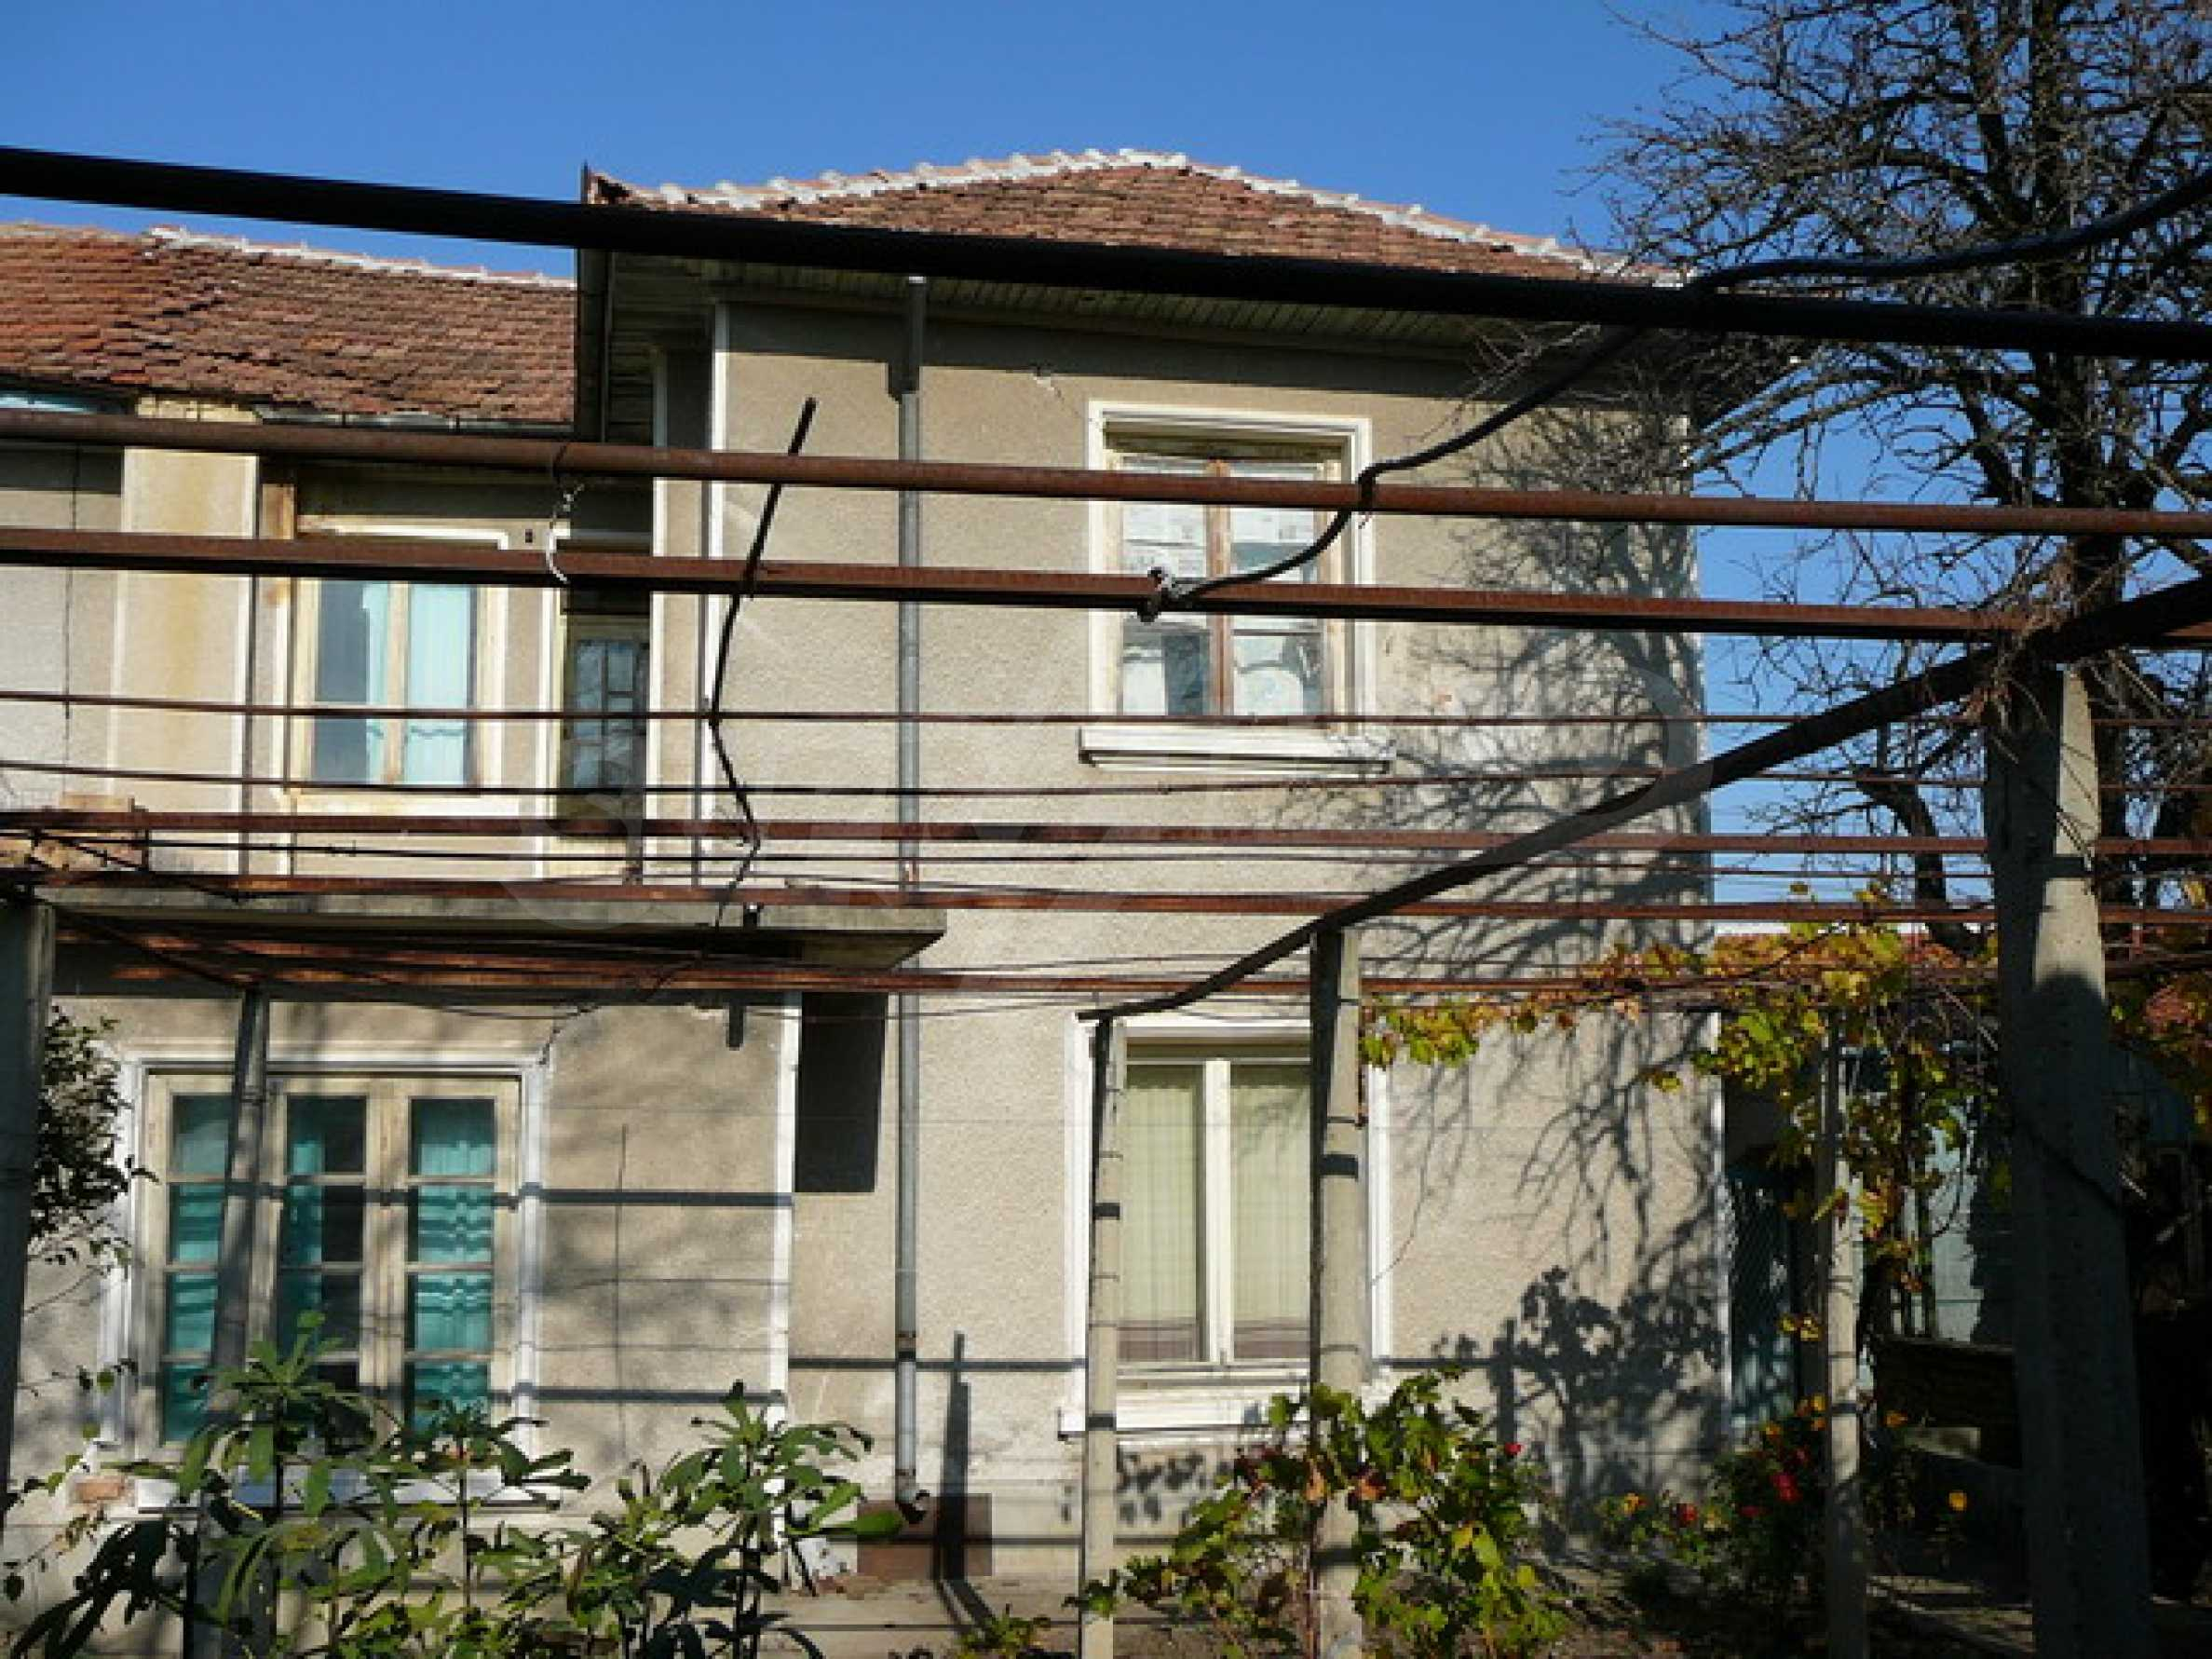 House for sale in a village close to Veliko Tarnovo 21